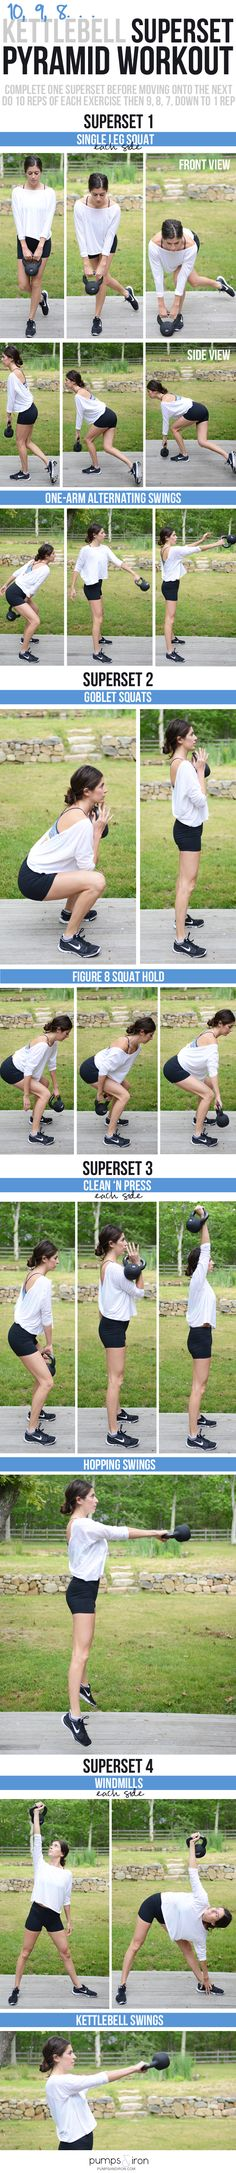 Kettlebell Superset Pyramid Workout -- this is a fun one! The structure makes the time fly by!